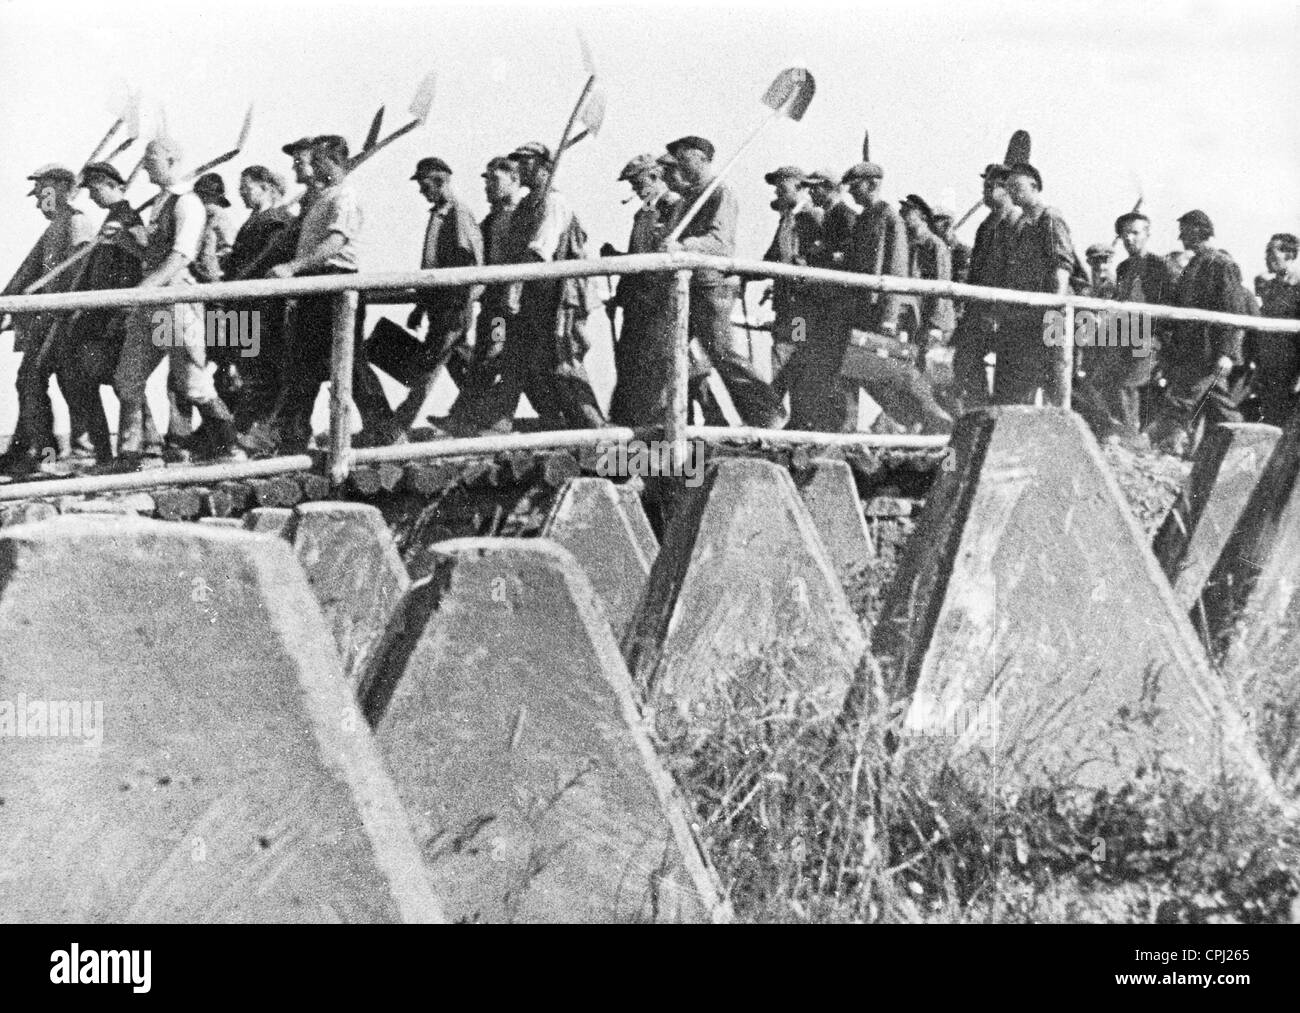 Construction workers on the march from 'Der Westwall', 1939 - Stock Image